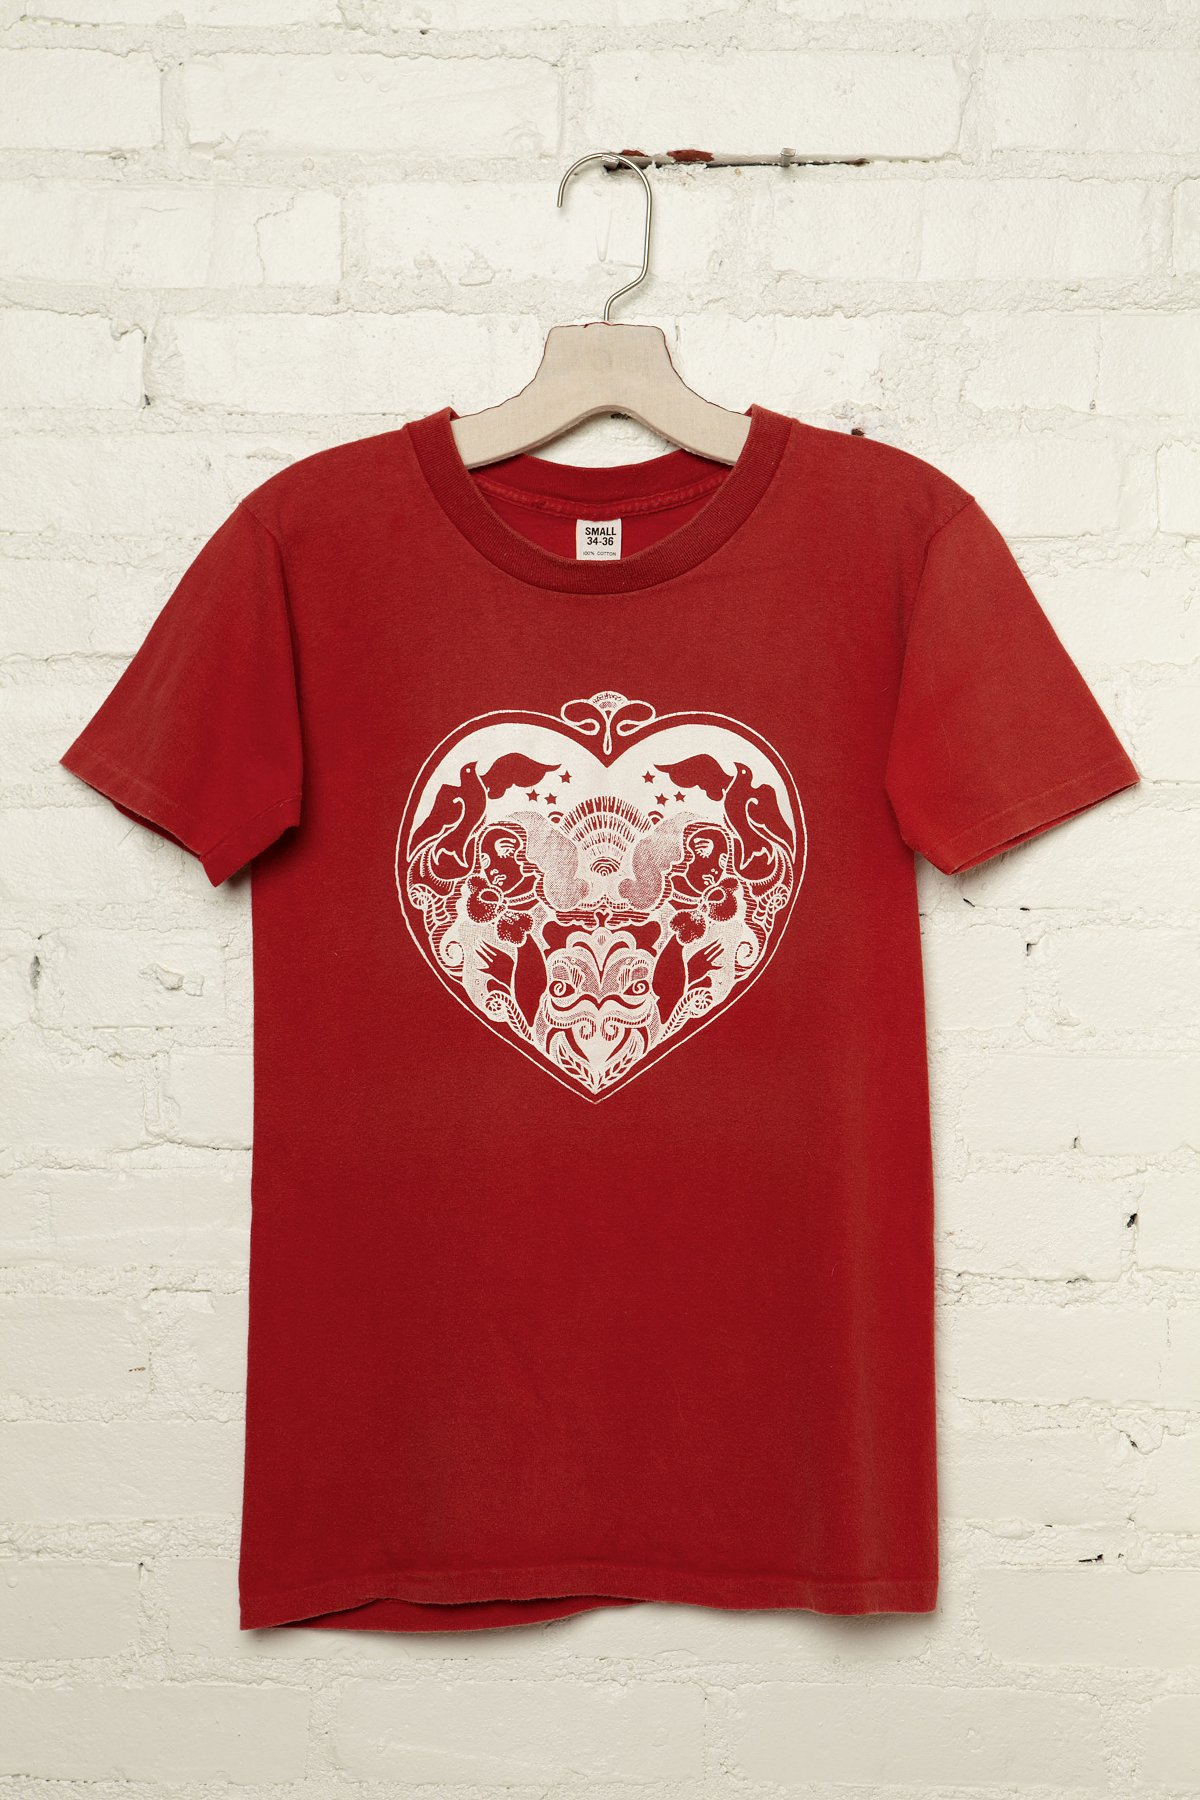 Vintage Hearts With Dove Graphic Tee